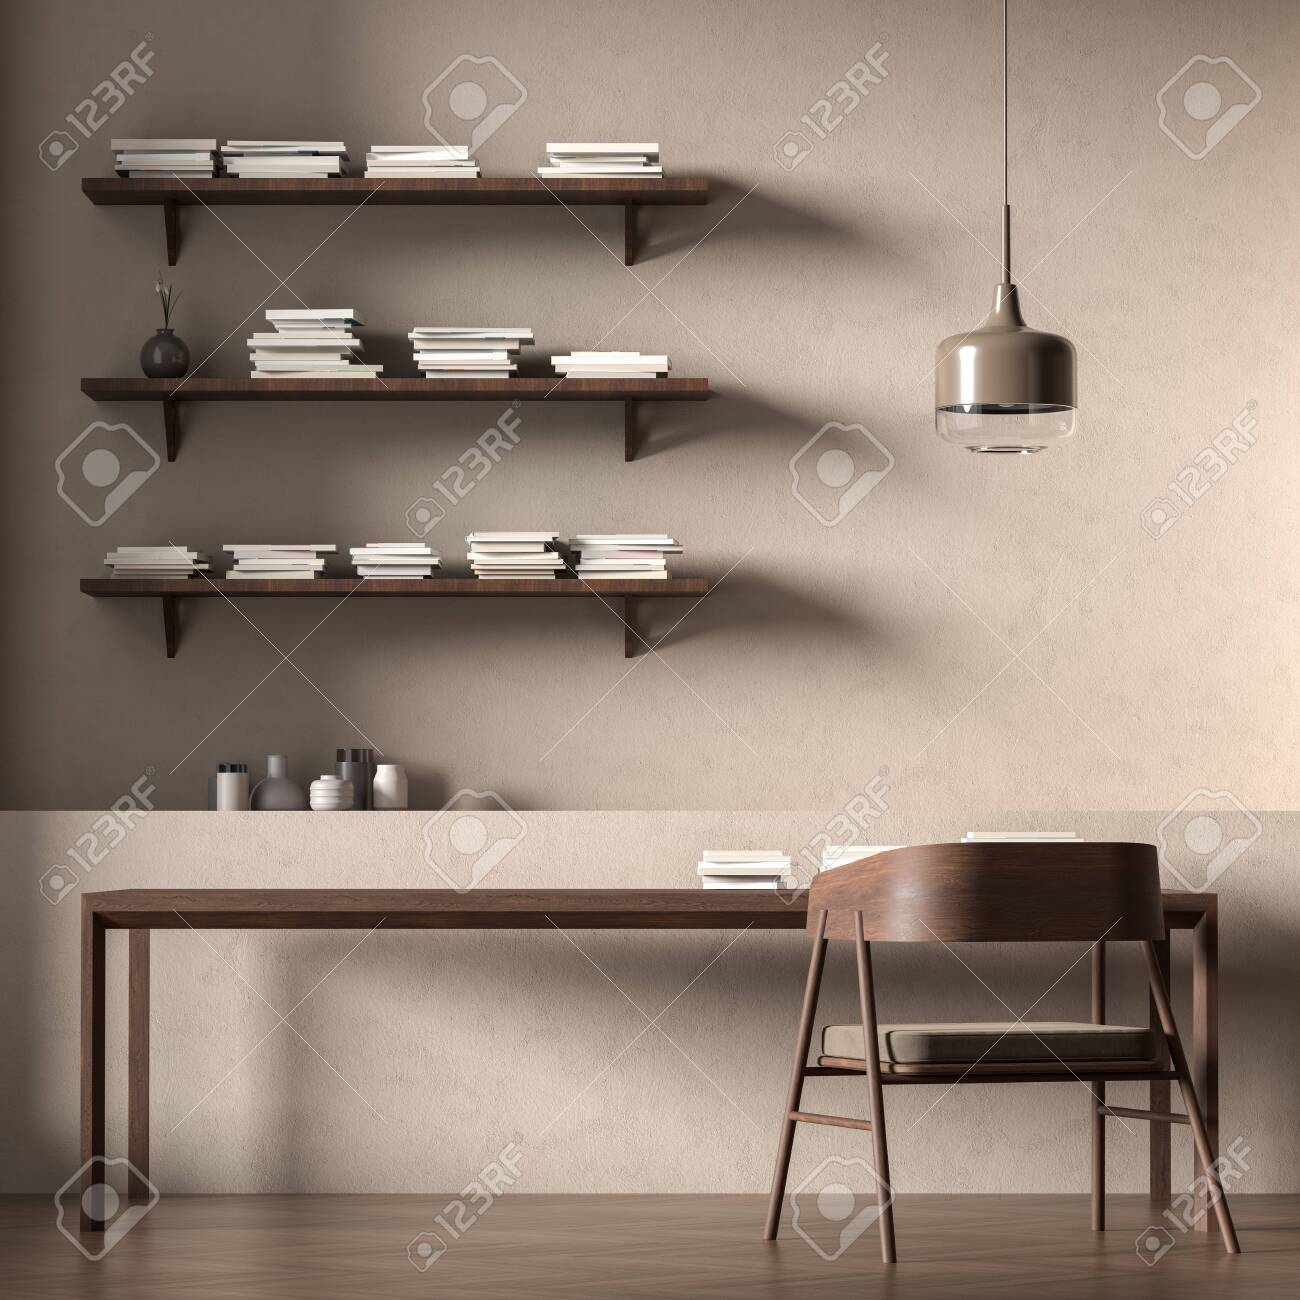 Scandinavian Style Interior With Modern Furnitures Minimalist Stock Photo Picture And Royalty Free Image Image 141338148